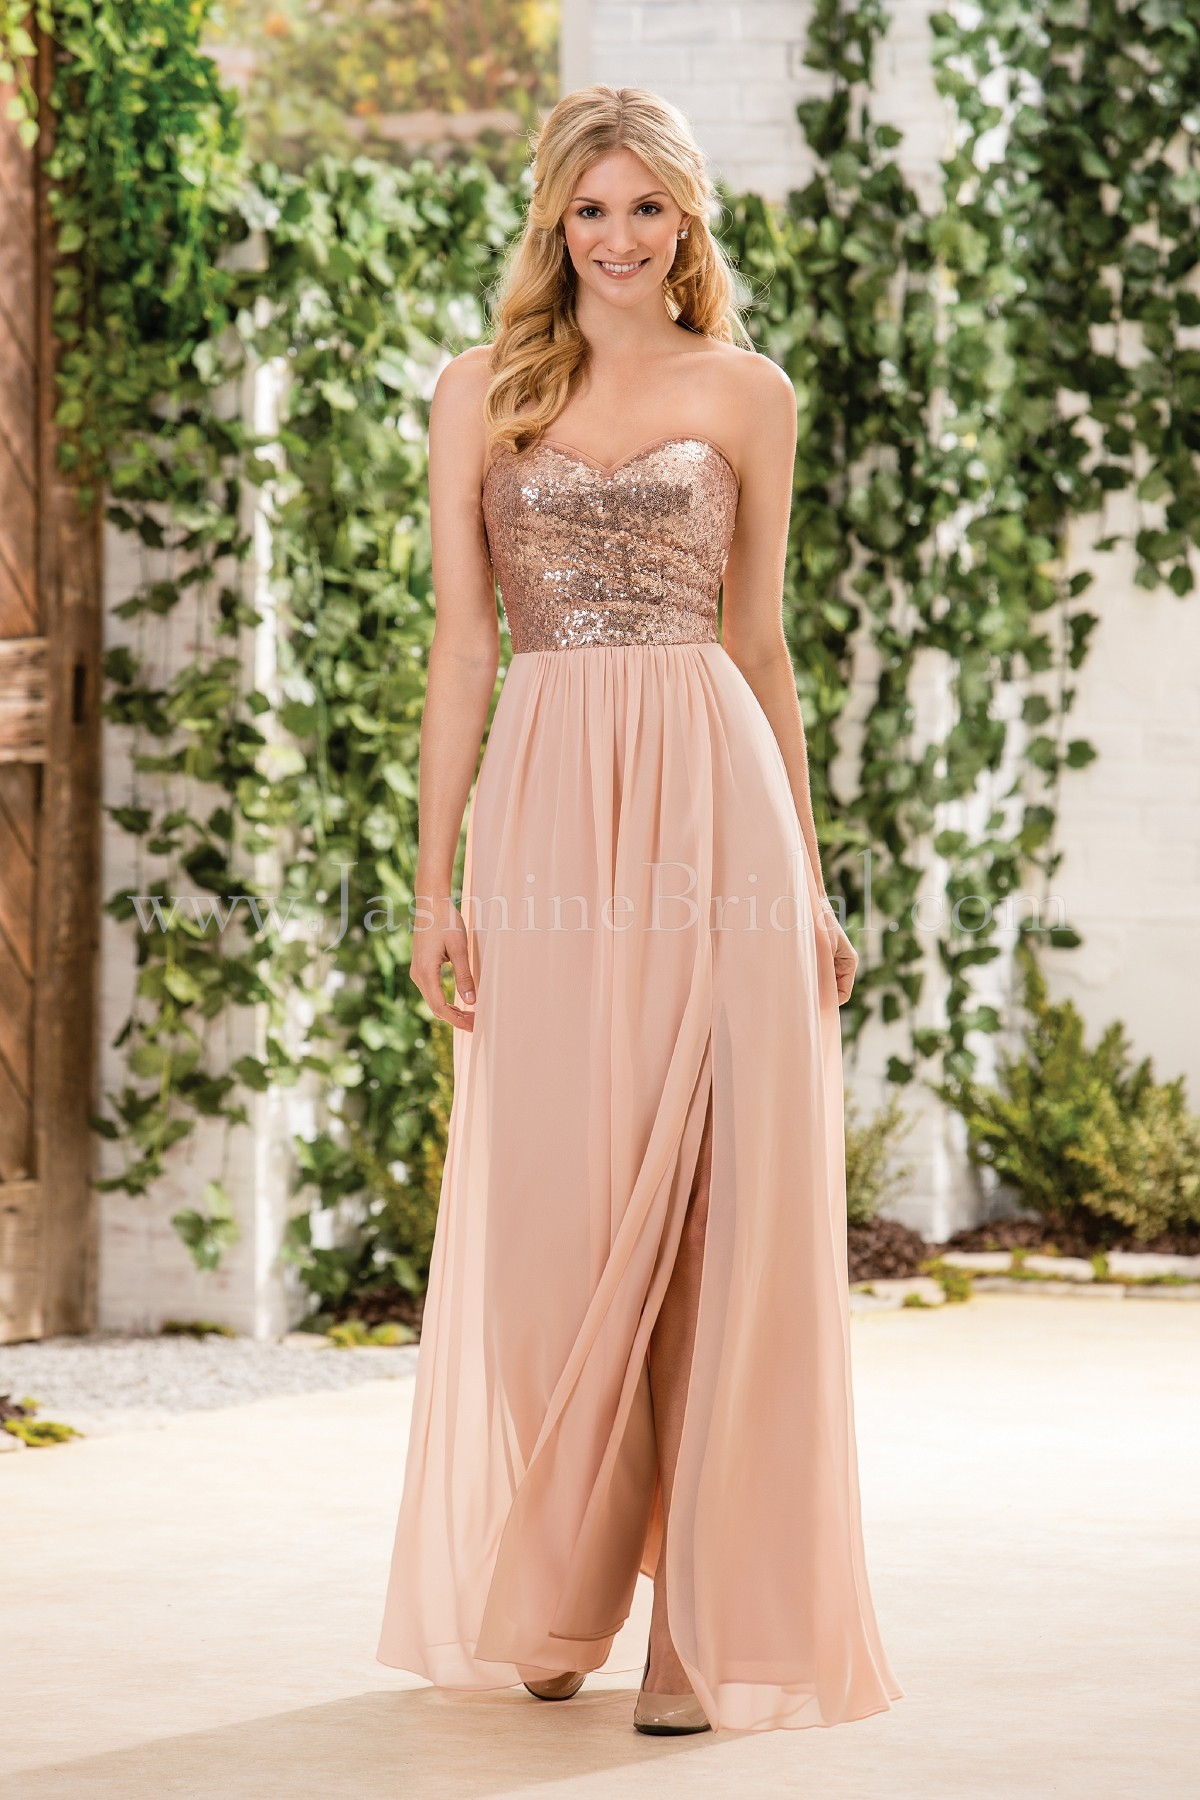 0dfa5d3ea7f B183064 Long Sweetheart Neckline Sequin   Poly Chiffon Bridesmaid Dress  with Slit